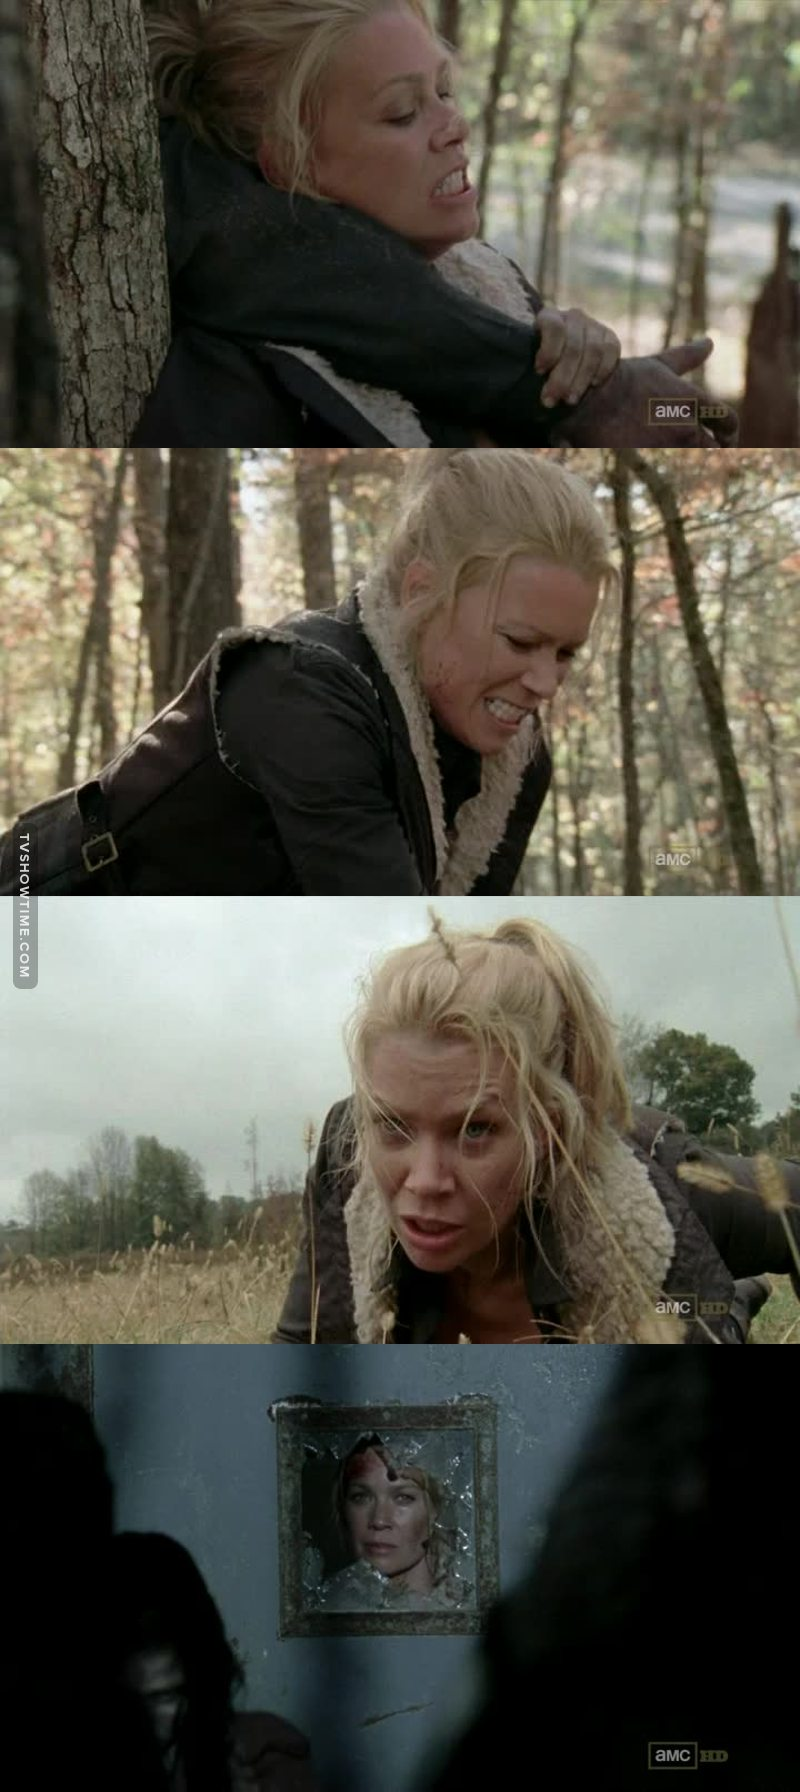 andrea can be so annoying but i gotta admit she was such a badass in this episode